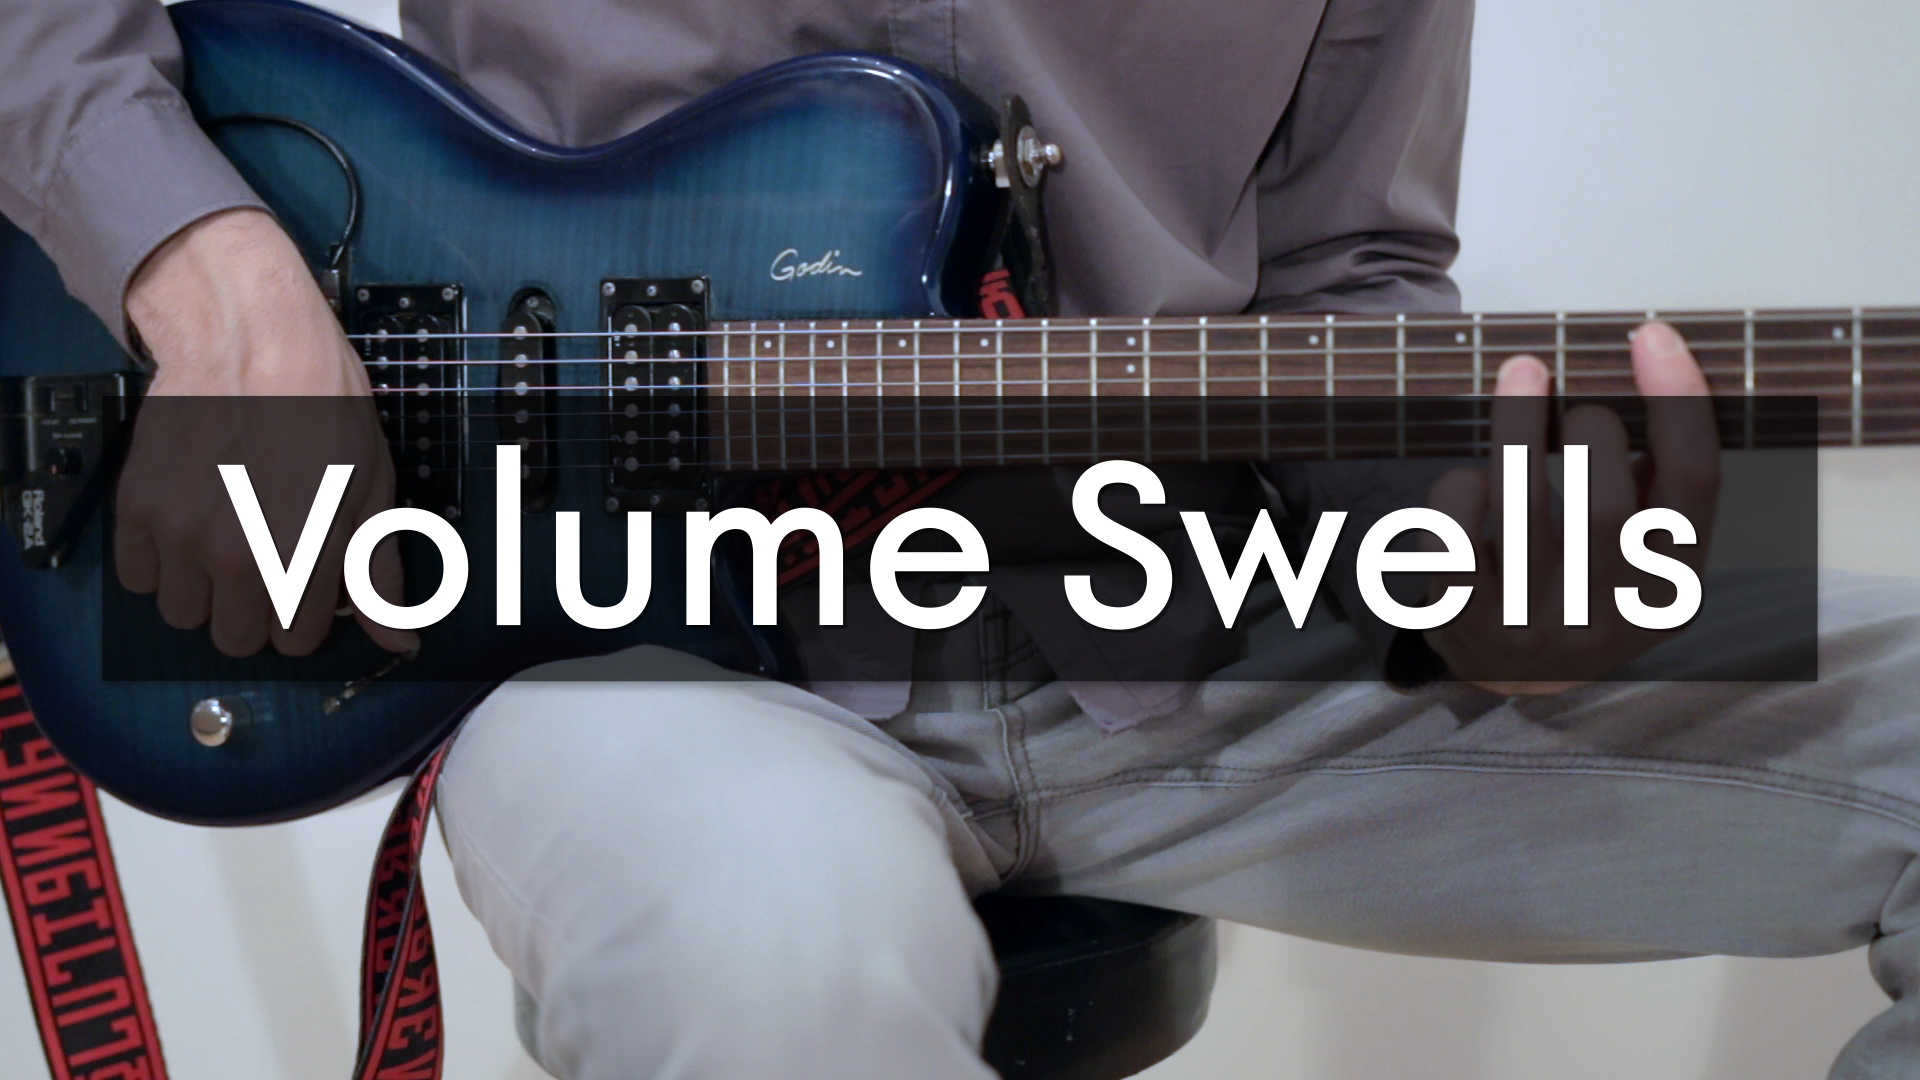 How to play Ambient guitar volume Swells